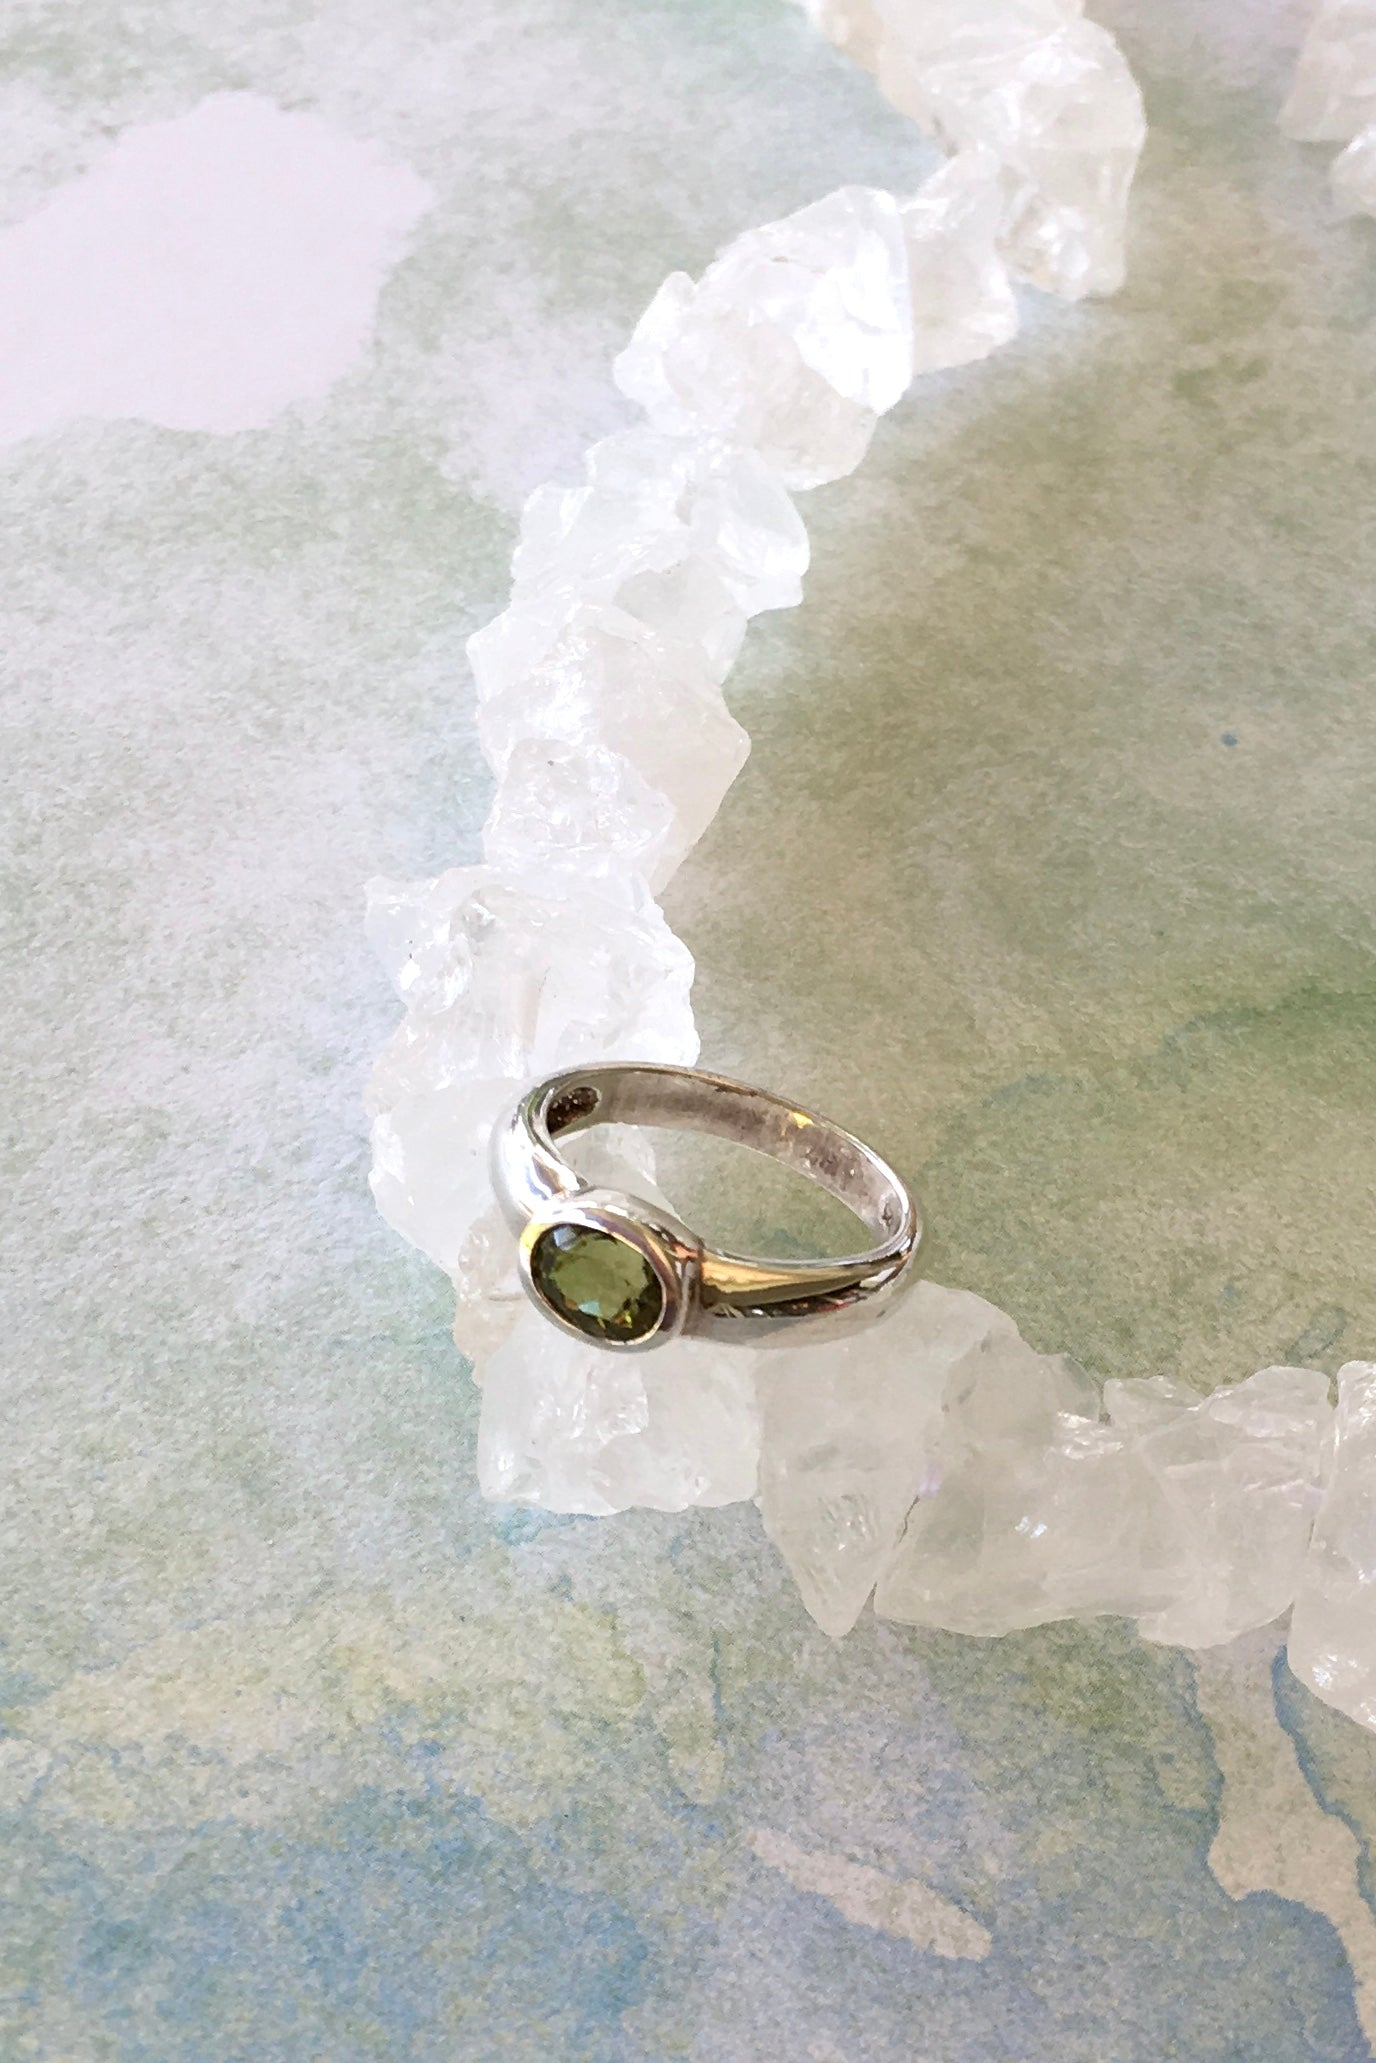 Ring with Green Tourmaline Stone in a Modern Silver Setting 5